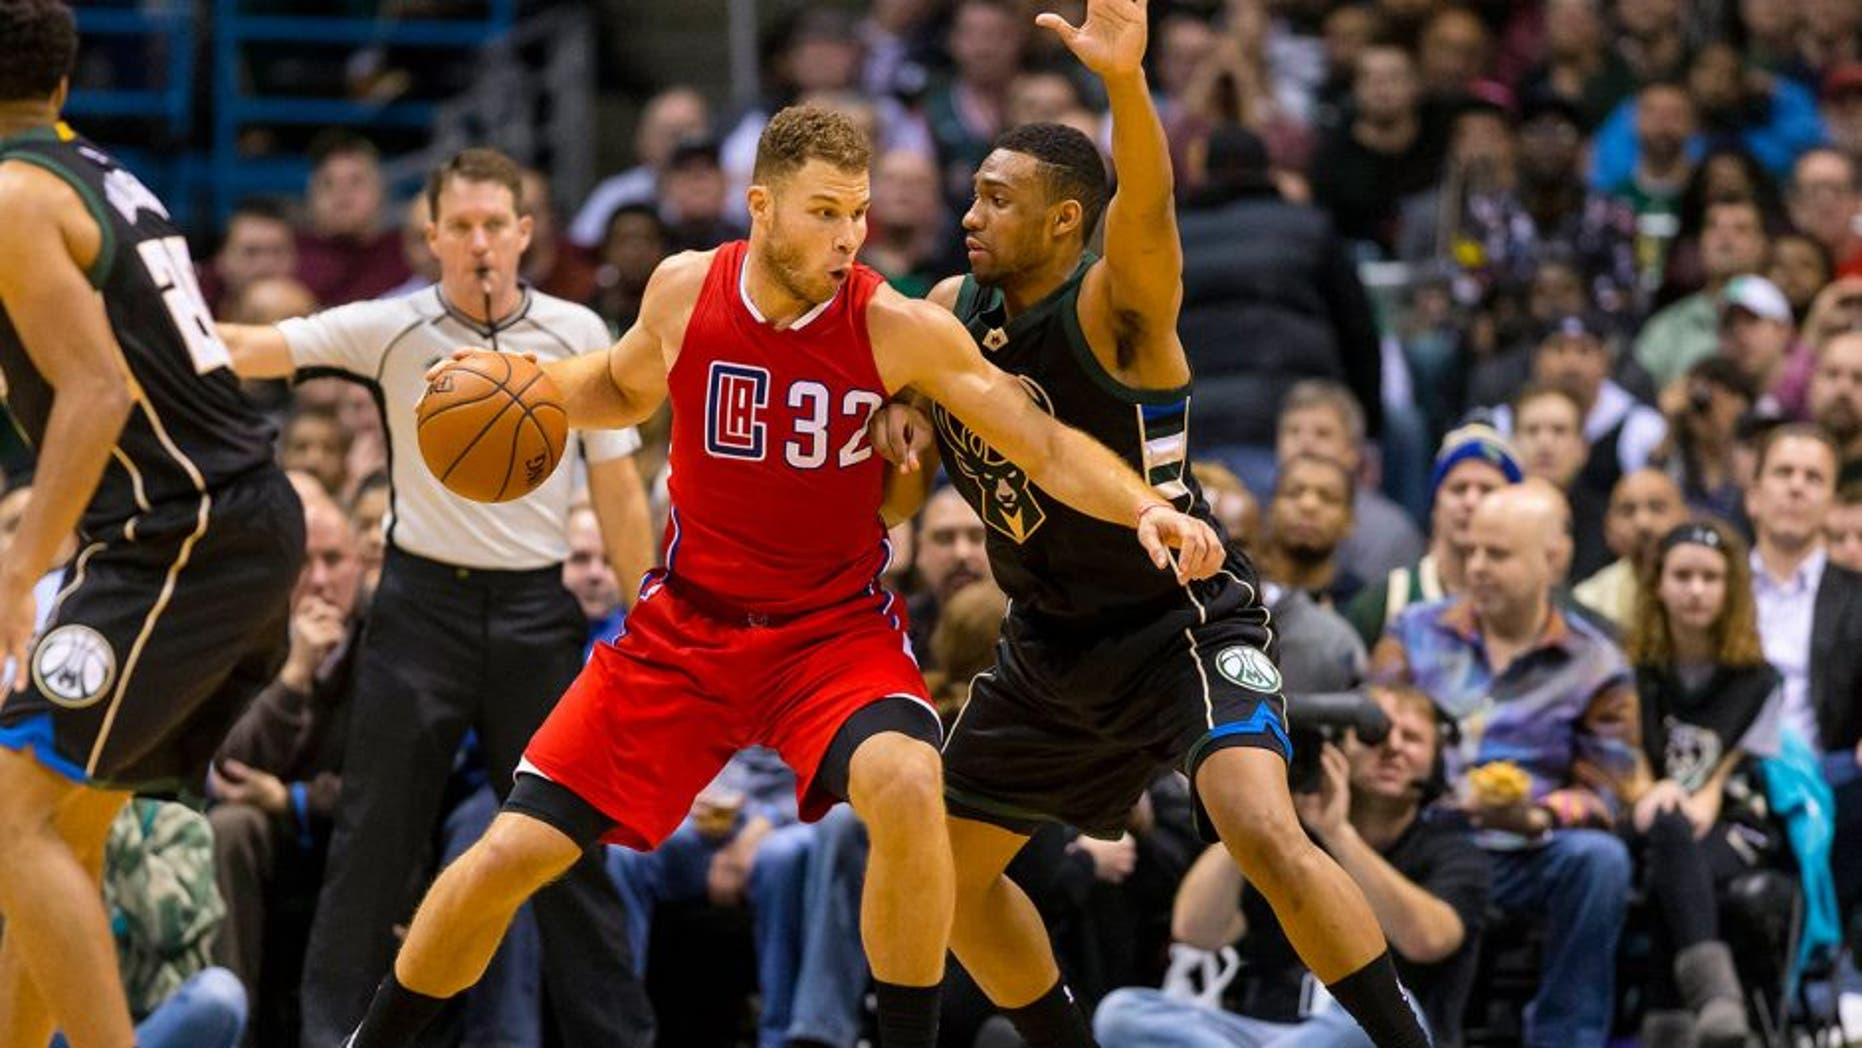 Dec 9, 2015; Milwaukee, WI, USA; Los Angeles Clippers forward Blake Griffin (32) drives for the basket as Milwaukee Bucks forward Jabari Parker (12) defends during the fourth quarter at BMO Harris Bradley Center. The Clippers won 109-95. Mandatory Credit: Jeff Hanisch-USA TODAY Sports